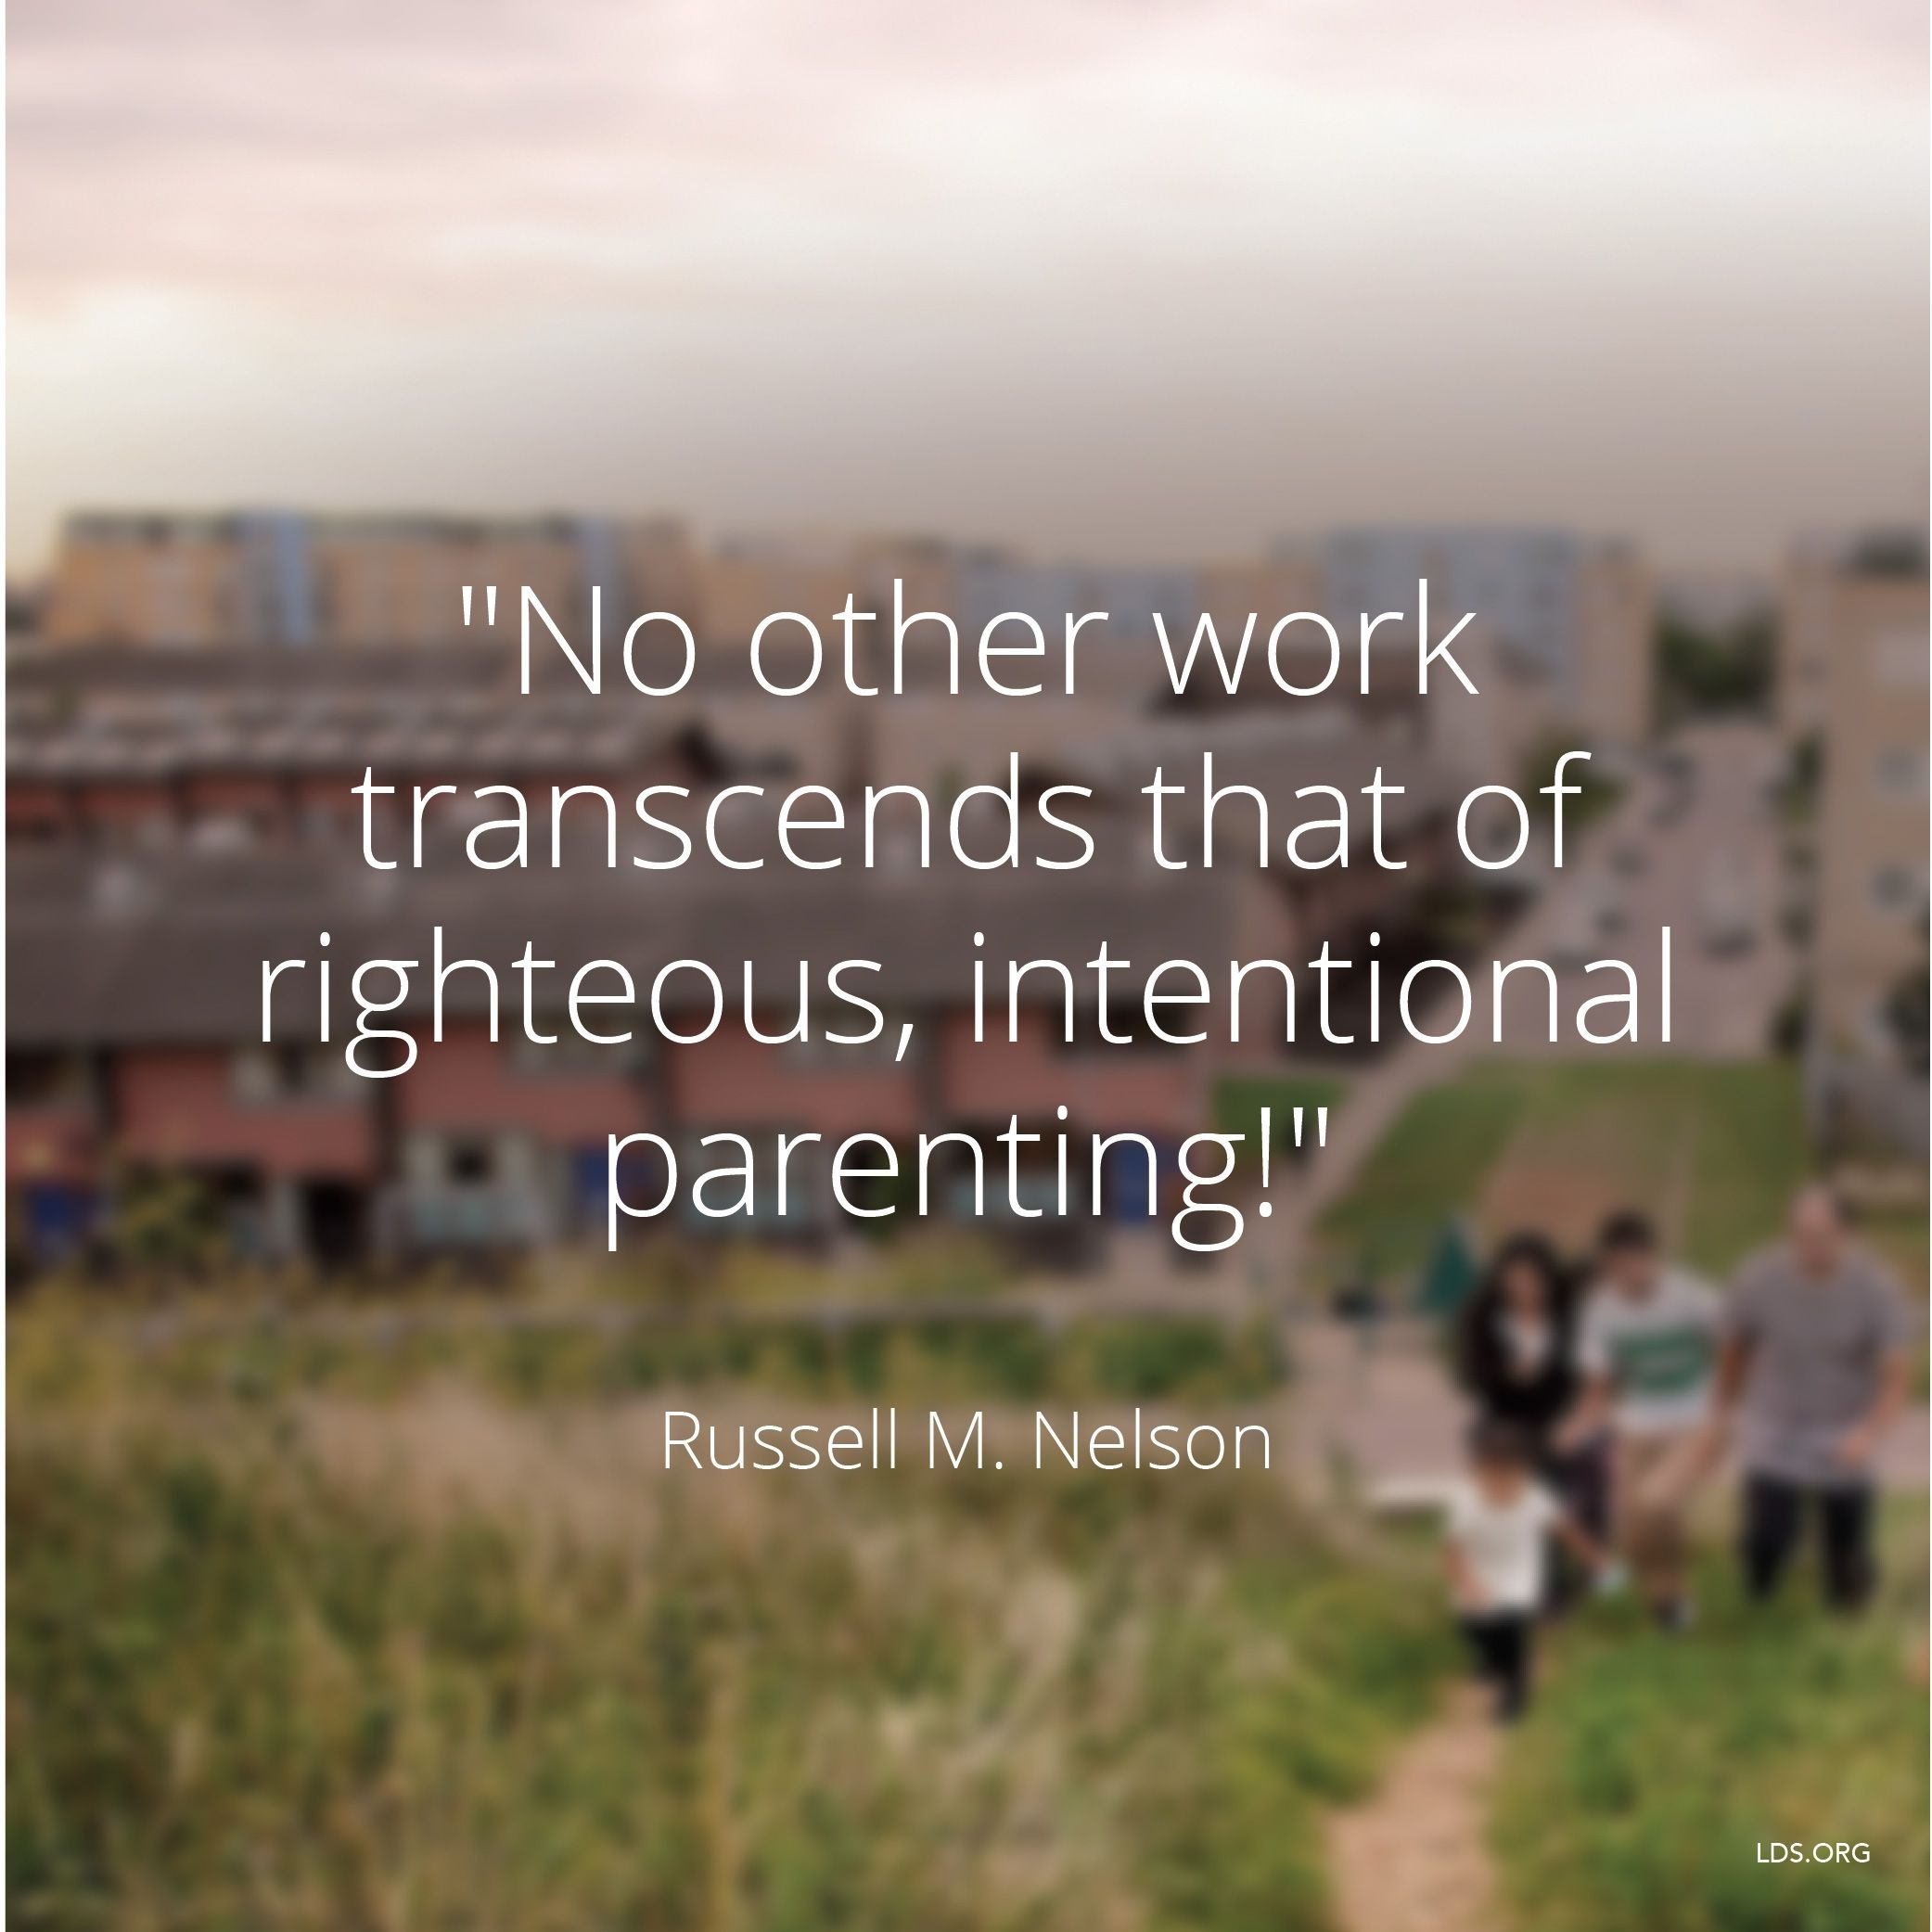 """No other work transcends that of righteous, intentional parenting!""—President Russell M. Nelson, ""The Sabbath Is a Delight"""